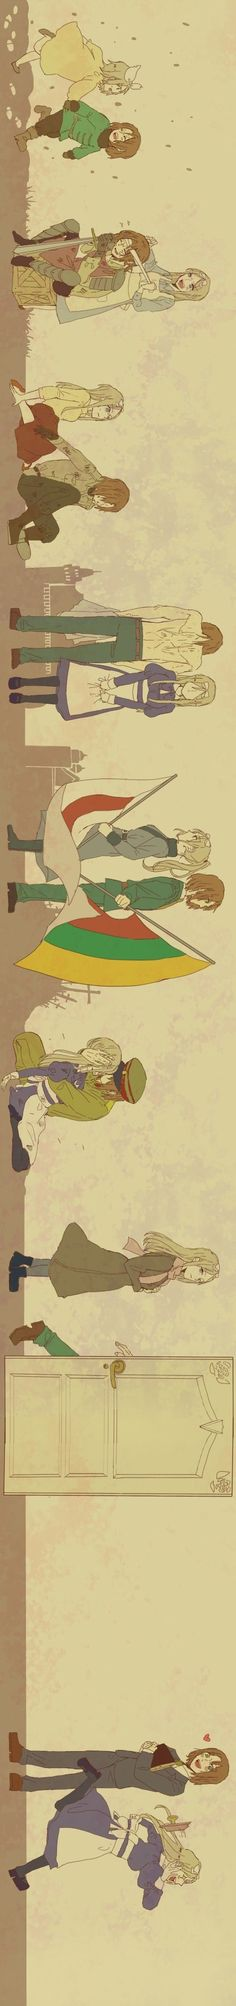 Hetalia Belarus and Lithuania (sheds a whole new light to this ship <3):